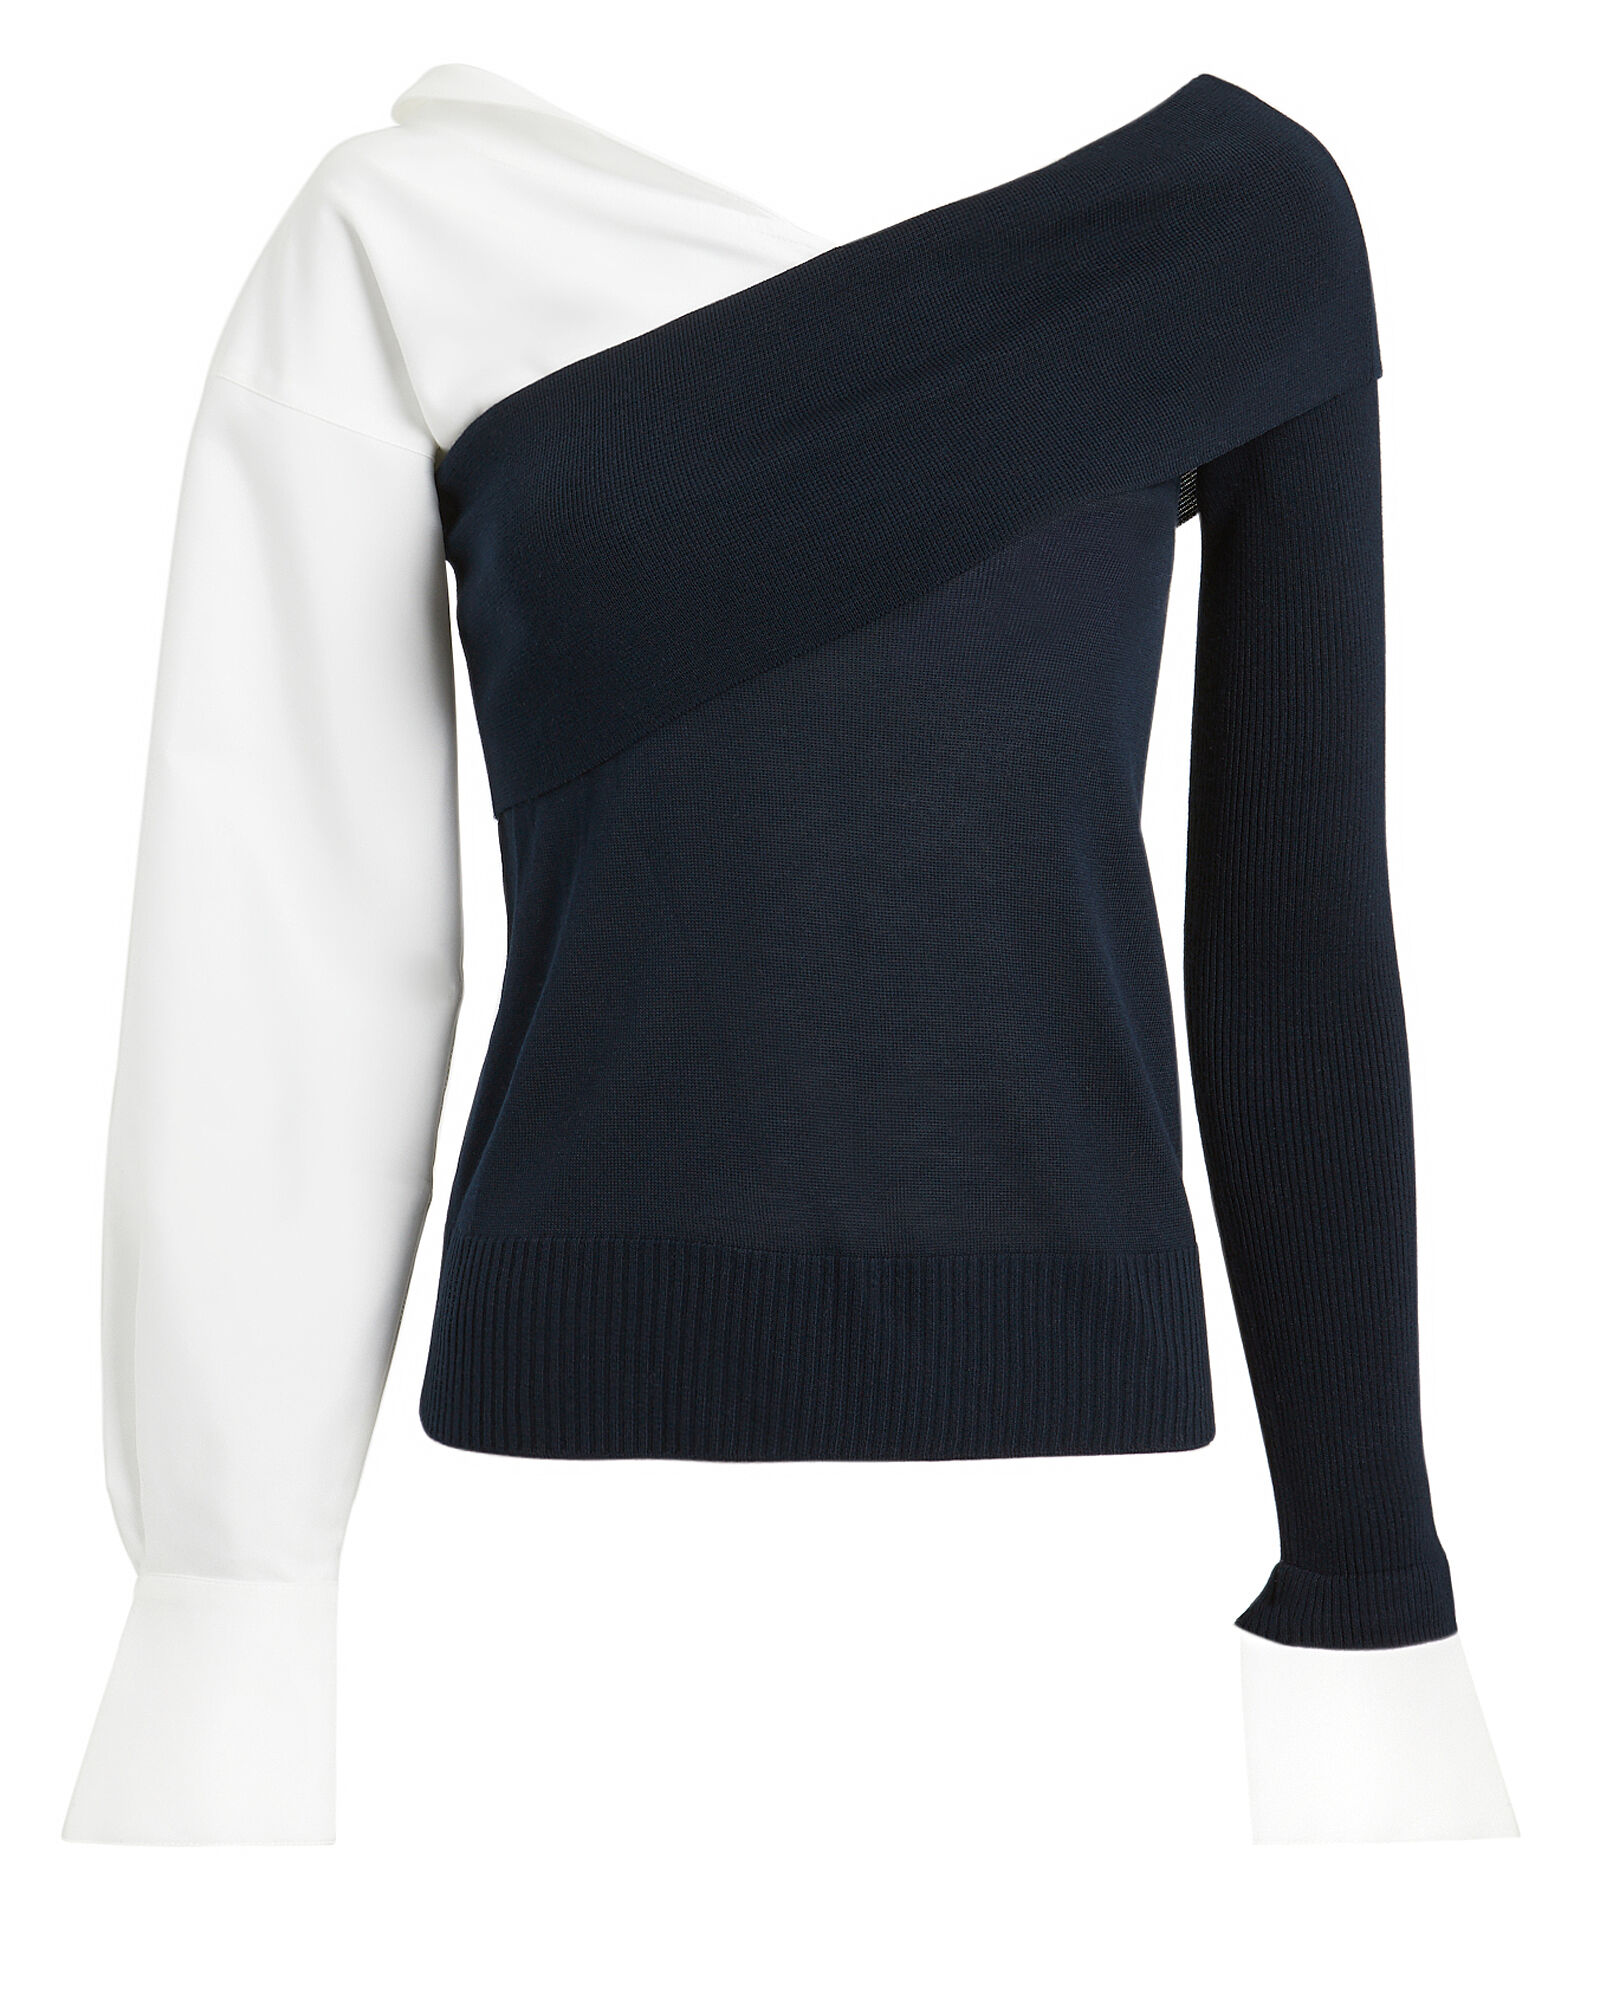 Removable Poplin Sleeve Knit Top, NAVY/WHITE, hi-res